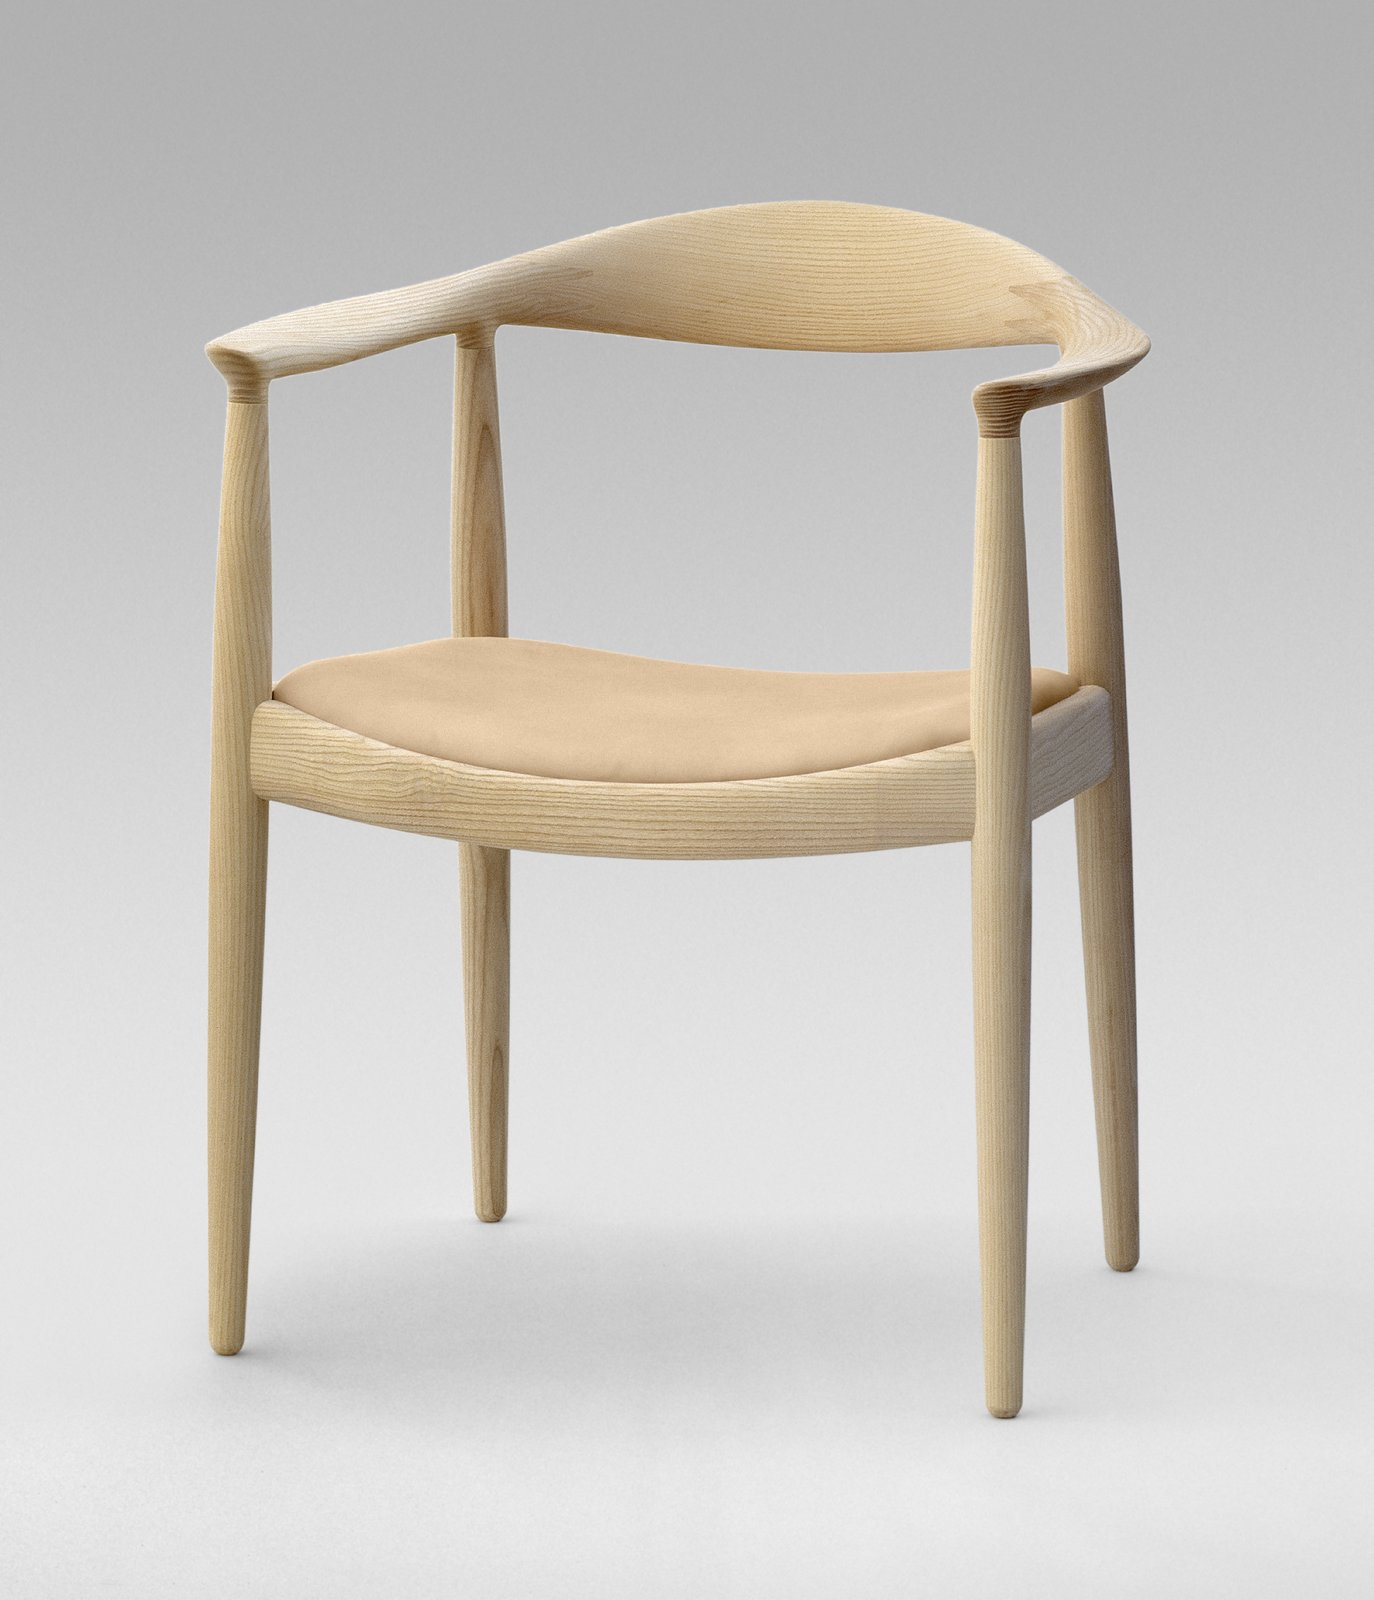 The round chair from 1949 is one of wegners most iconic pieces and a highlight of